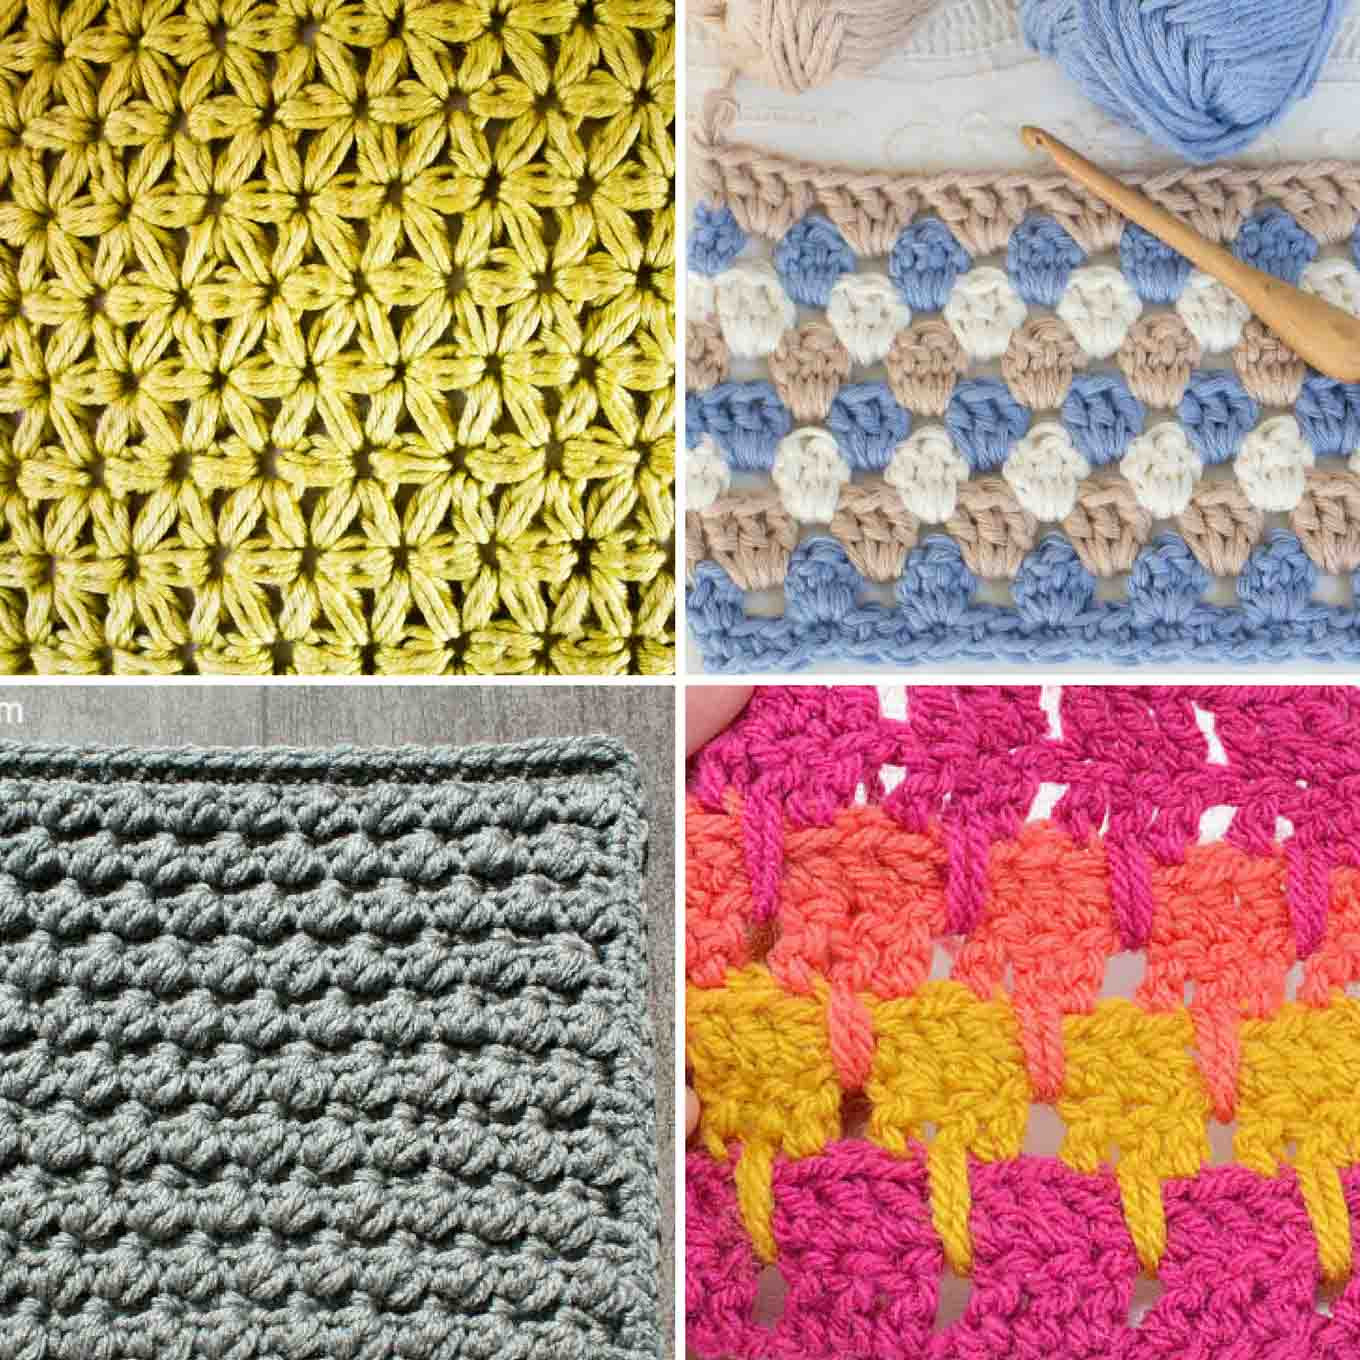 Large Crochet Blanket Best Of 25 Crochet Stitches for Blankets and Afghans Make & Do Crew Of Adorable 47 Pics Large Crochet Blanket